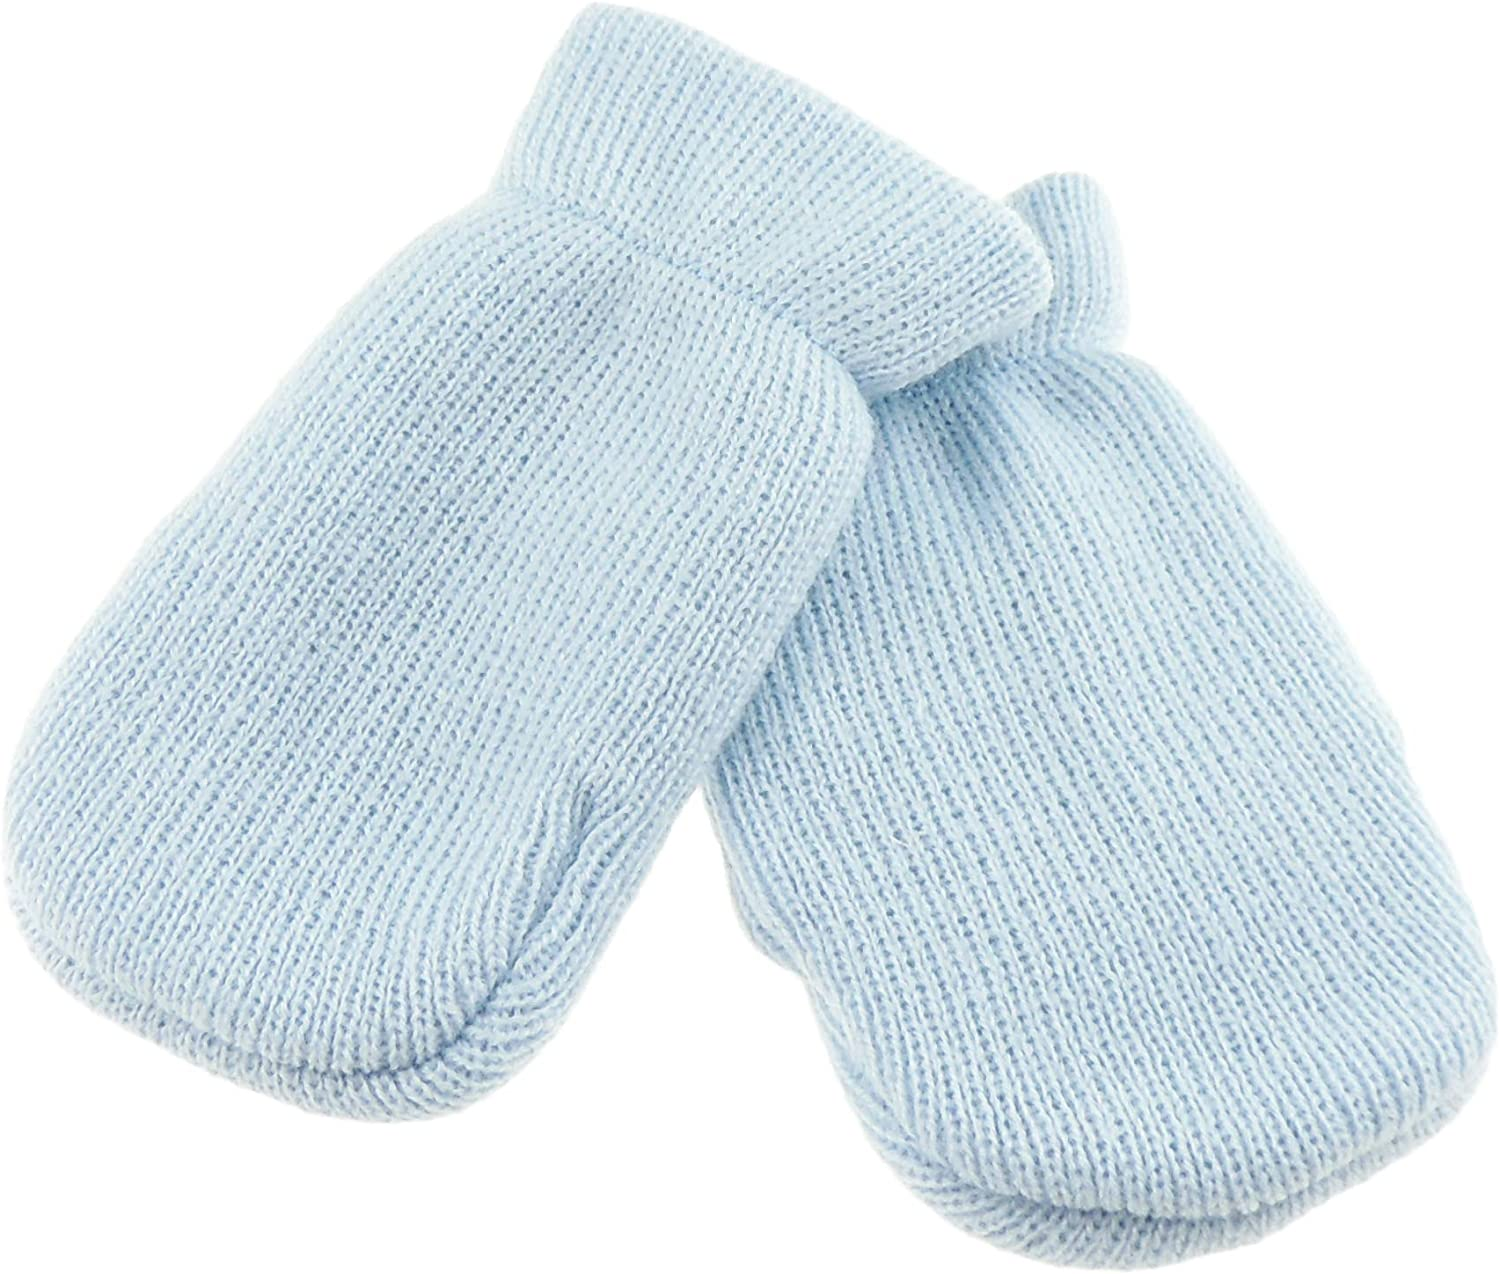 6 mesi blu Blue taglia unica Baby Girls Boys Block Colour Warm Winter Gathered foderato fine Knit Mittens neonato